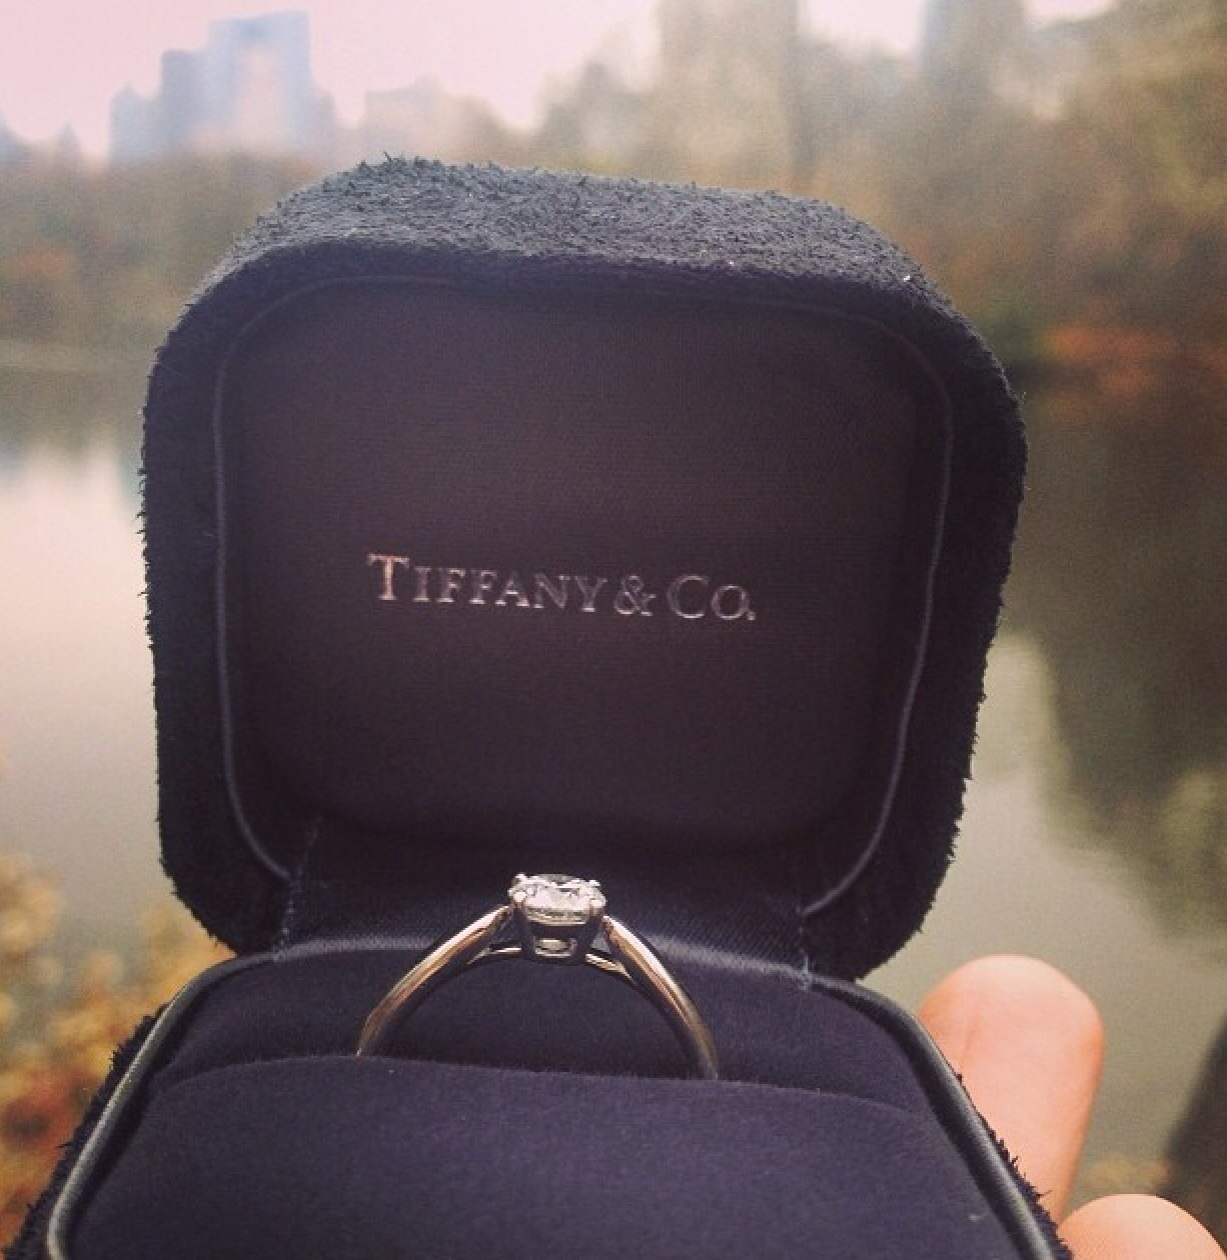 tiffany engagement ring in proposal